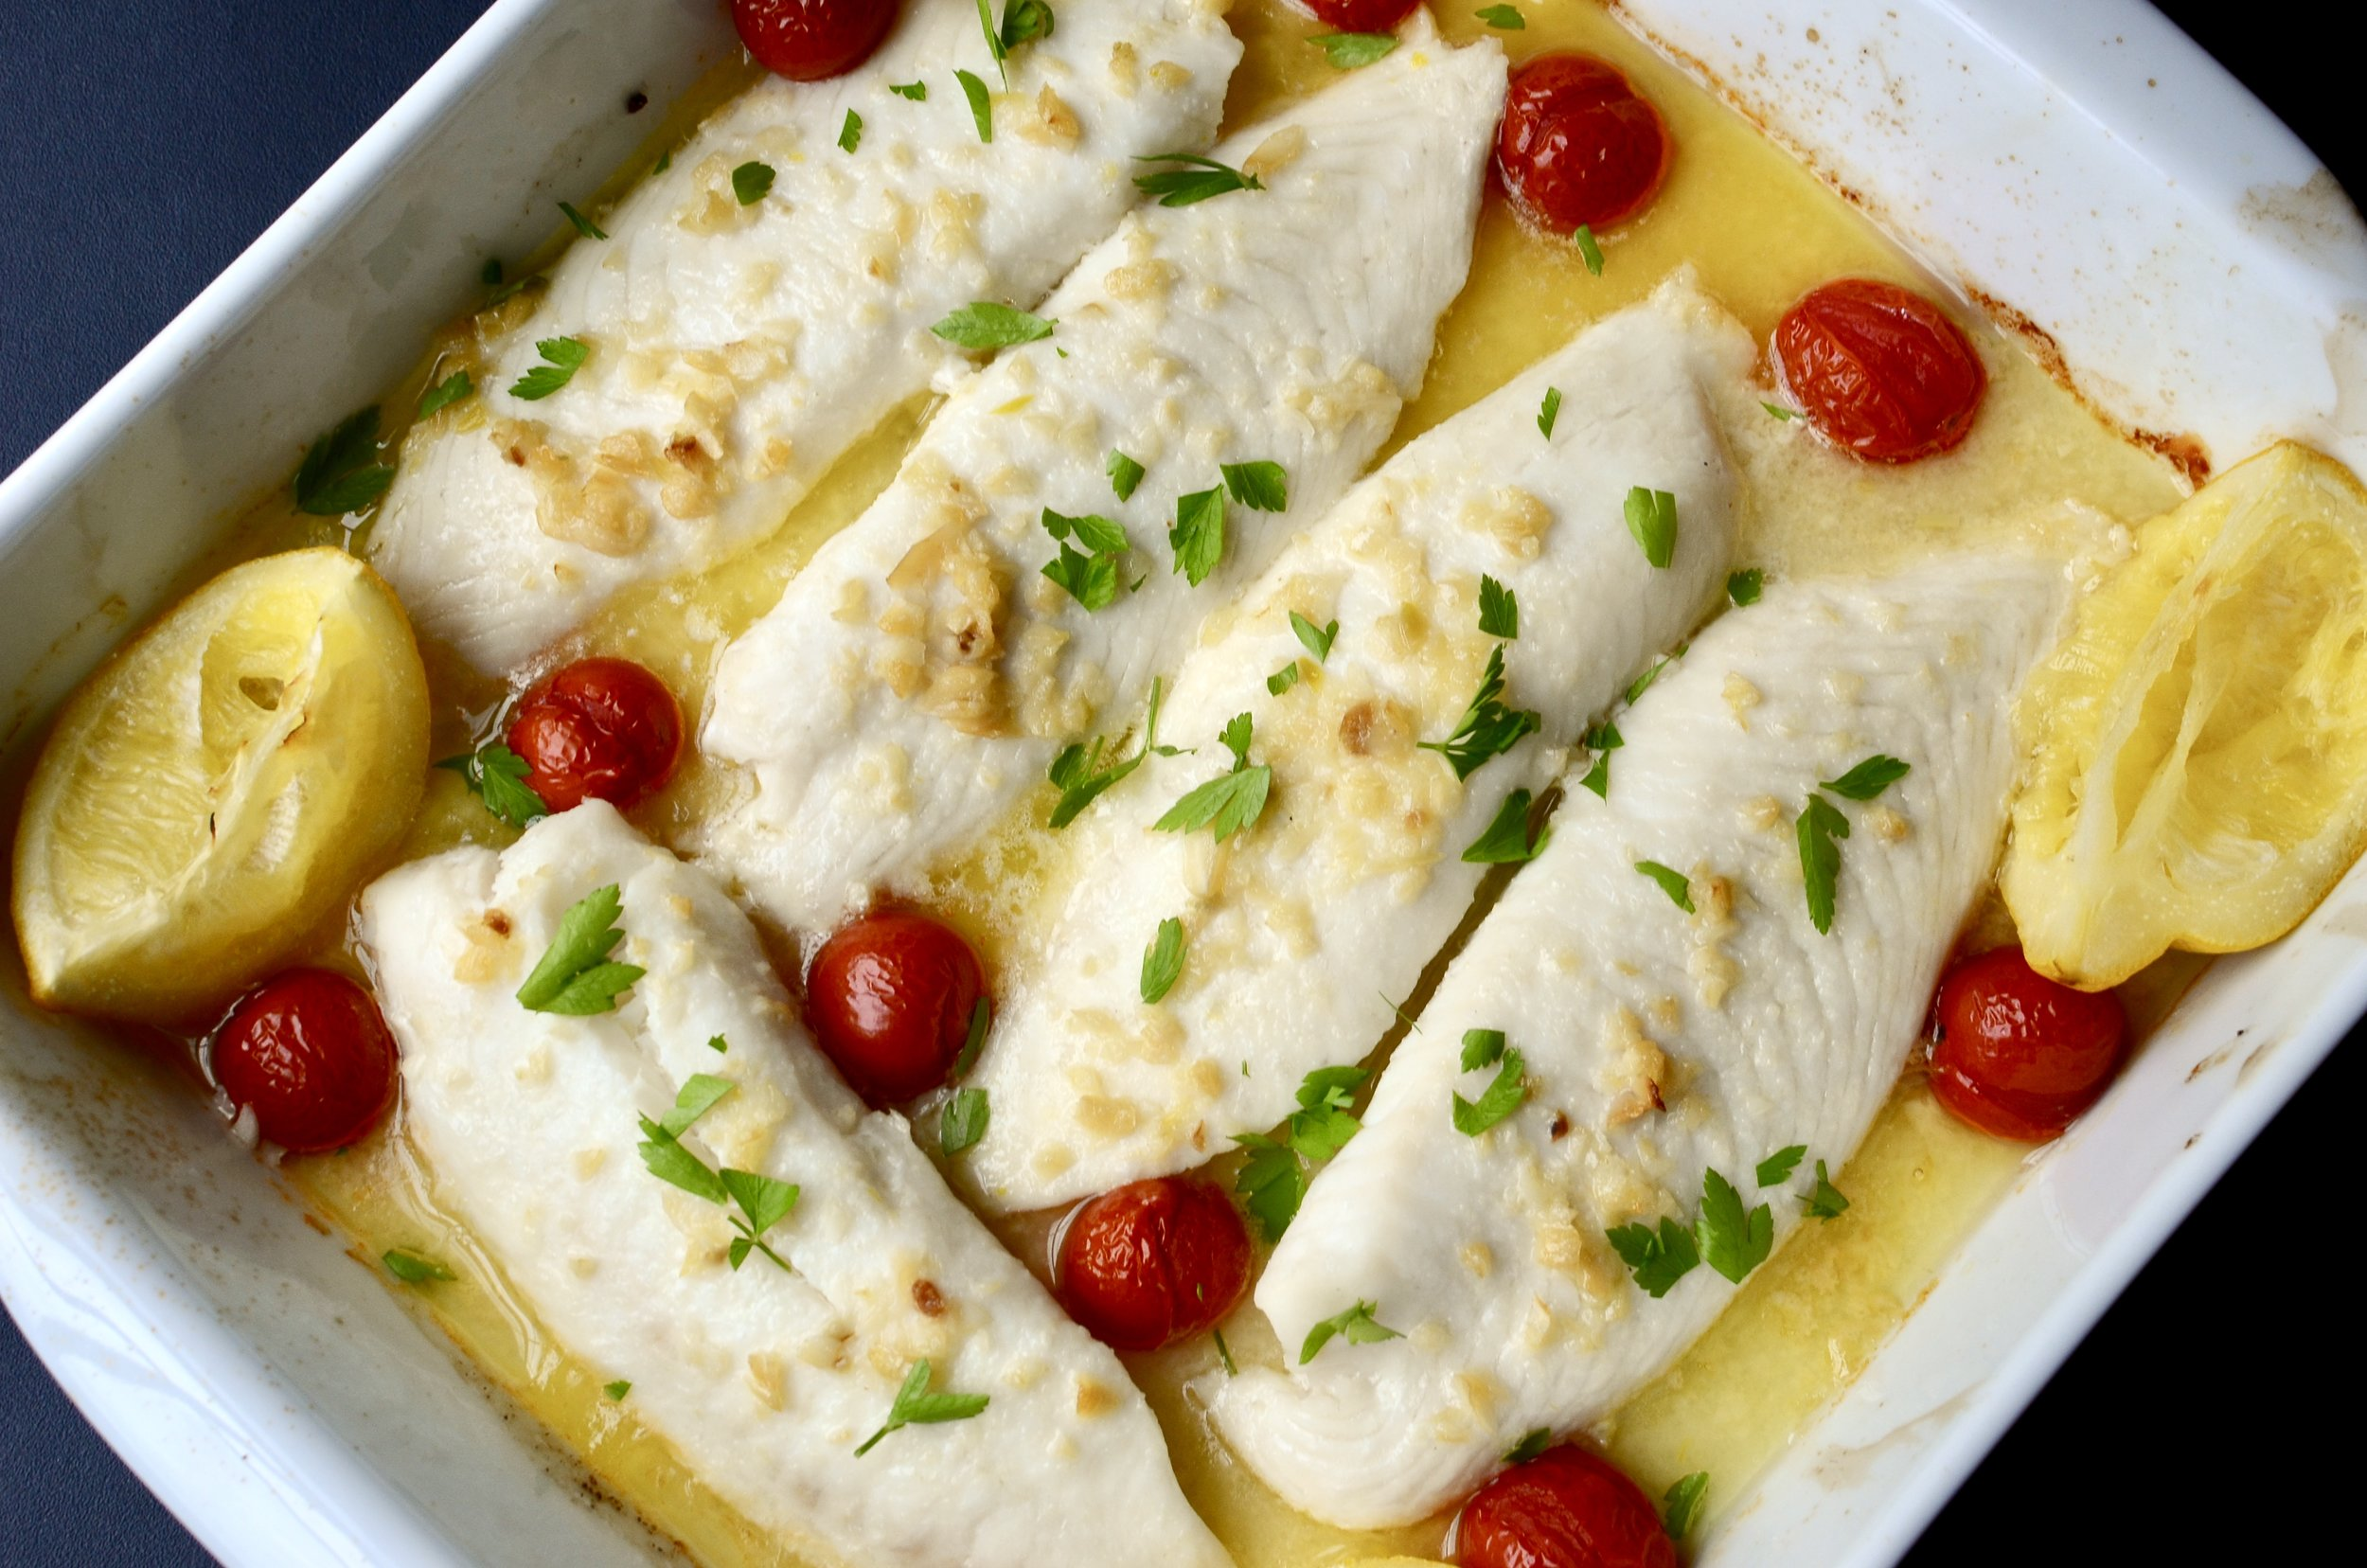 oven-baked-cod-with-lemon-butter-sauce-recipe-butteryum